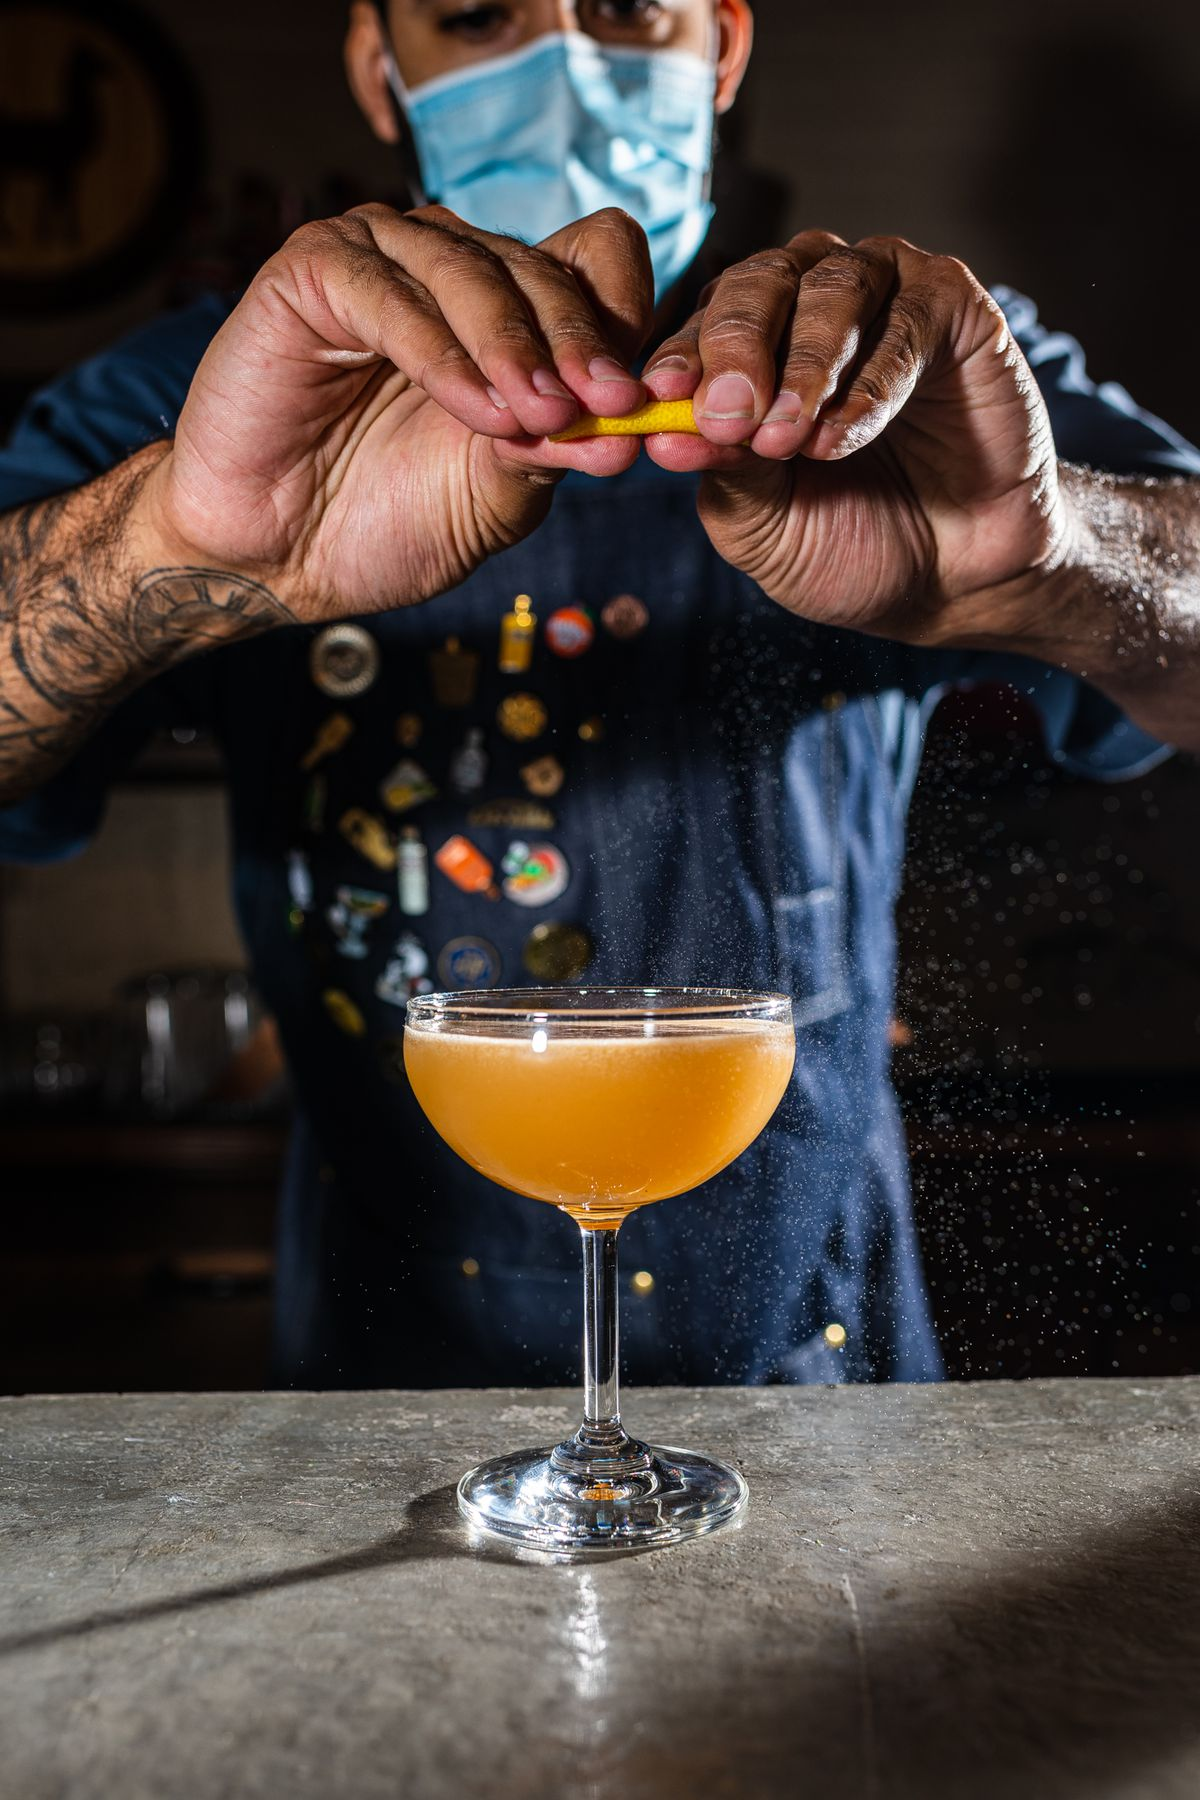 A bartender wearing a mask expresses a lemon peel into an apricot-colored aguardiente cocktail from Chacho